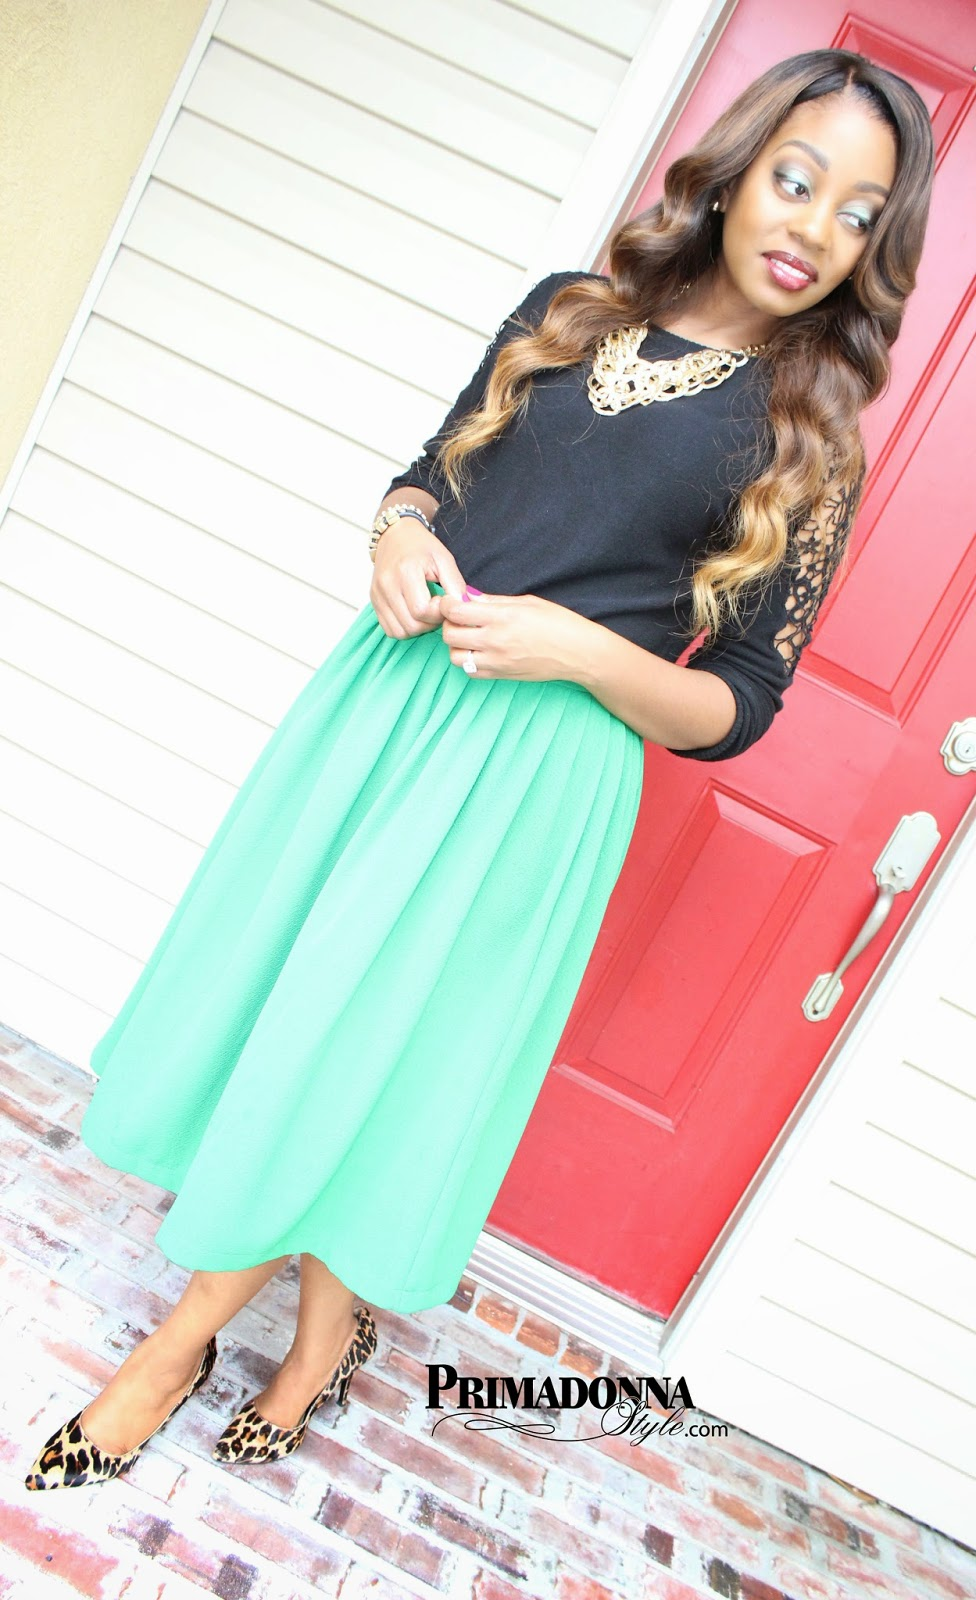 asos woven midi vintage skirt forever 21 crochet sweater nine west flax leopard pony hair heels pumps bcbgeneration fierce affirmation capsule by cara bracelet textured gold necklace charming charlie